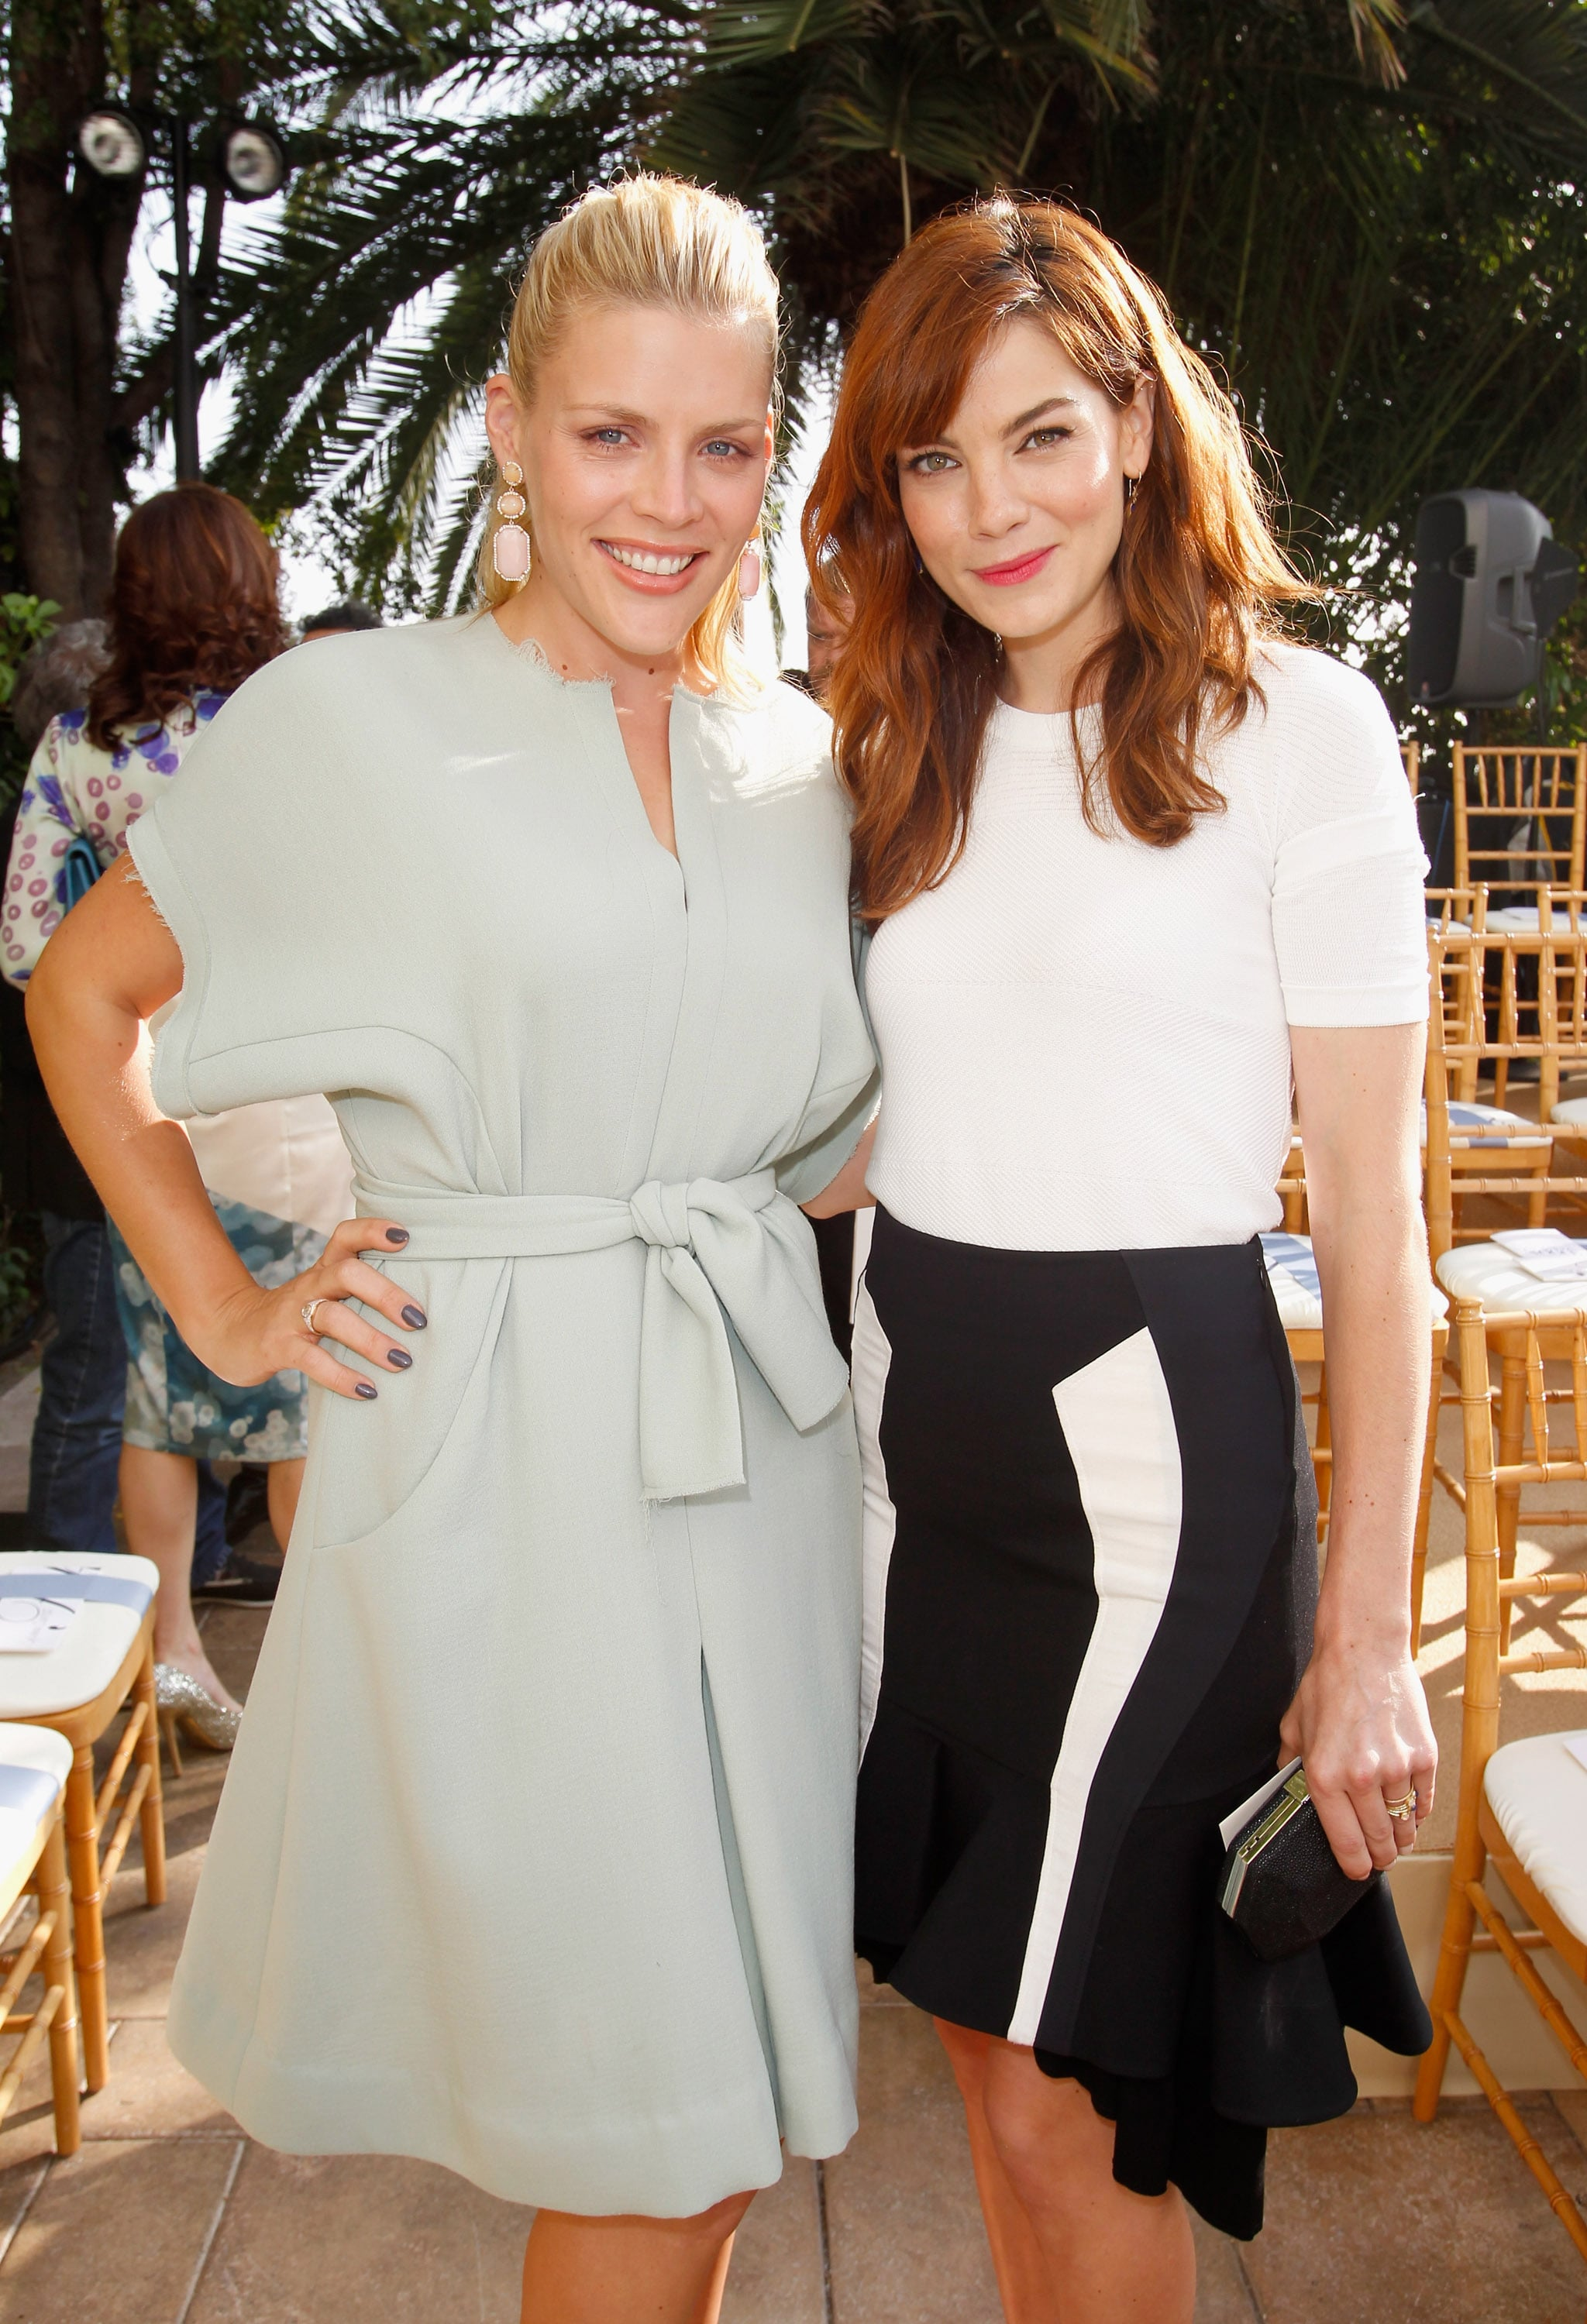 Busy Philipps and Michelle Monaghan at a Vogue party in LA.